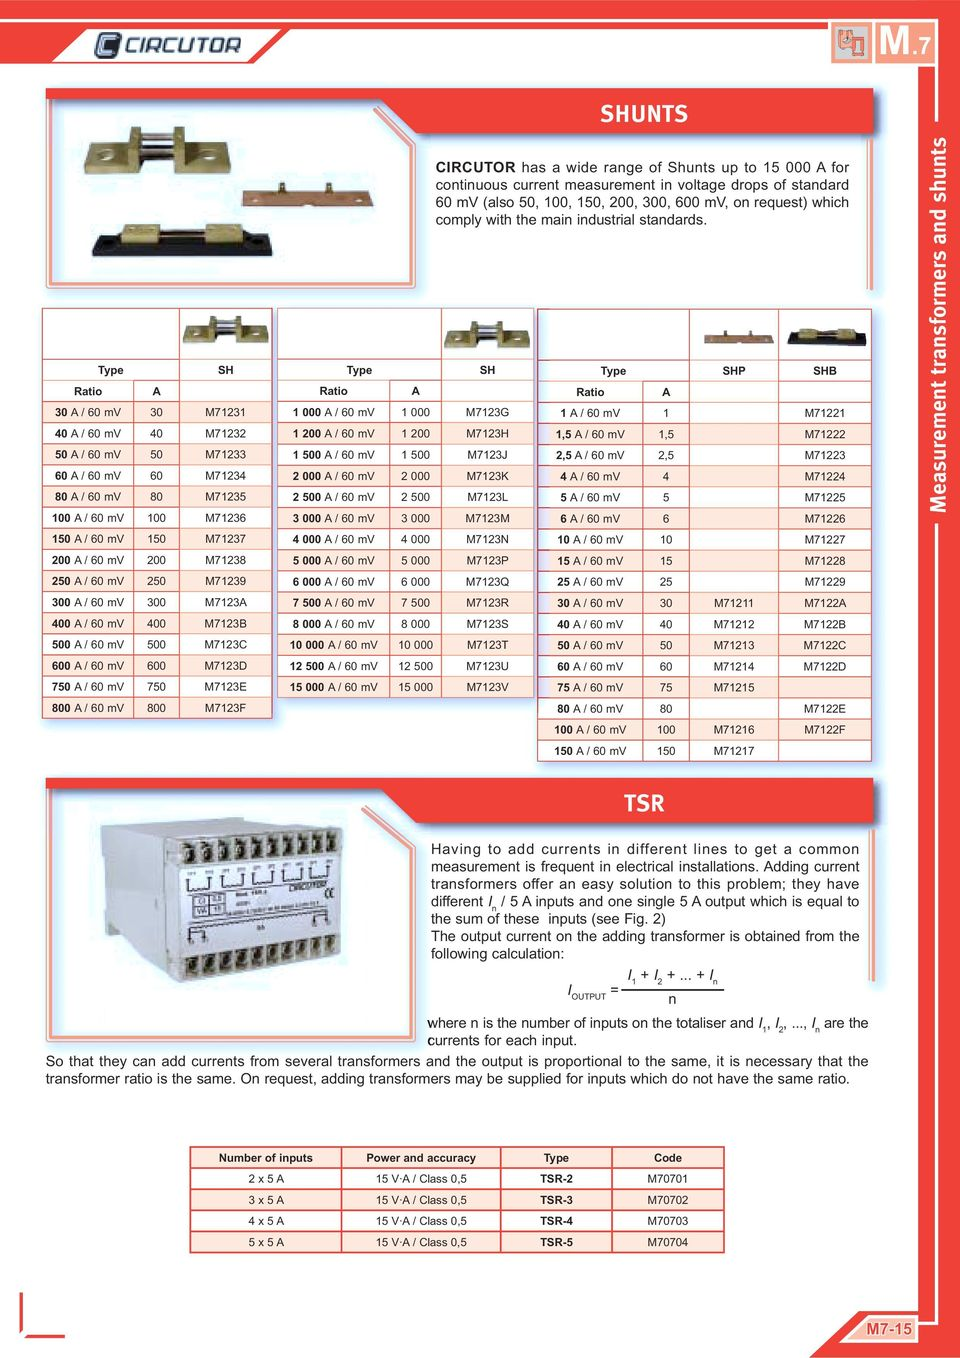 voltage drops of standard 60 mv (also, 100, 1, 200, 300, 600 mv, on request) whih omply with the main industrial standards.